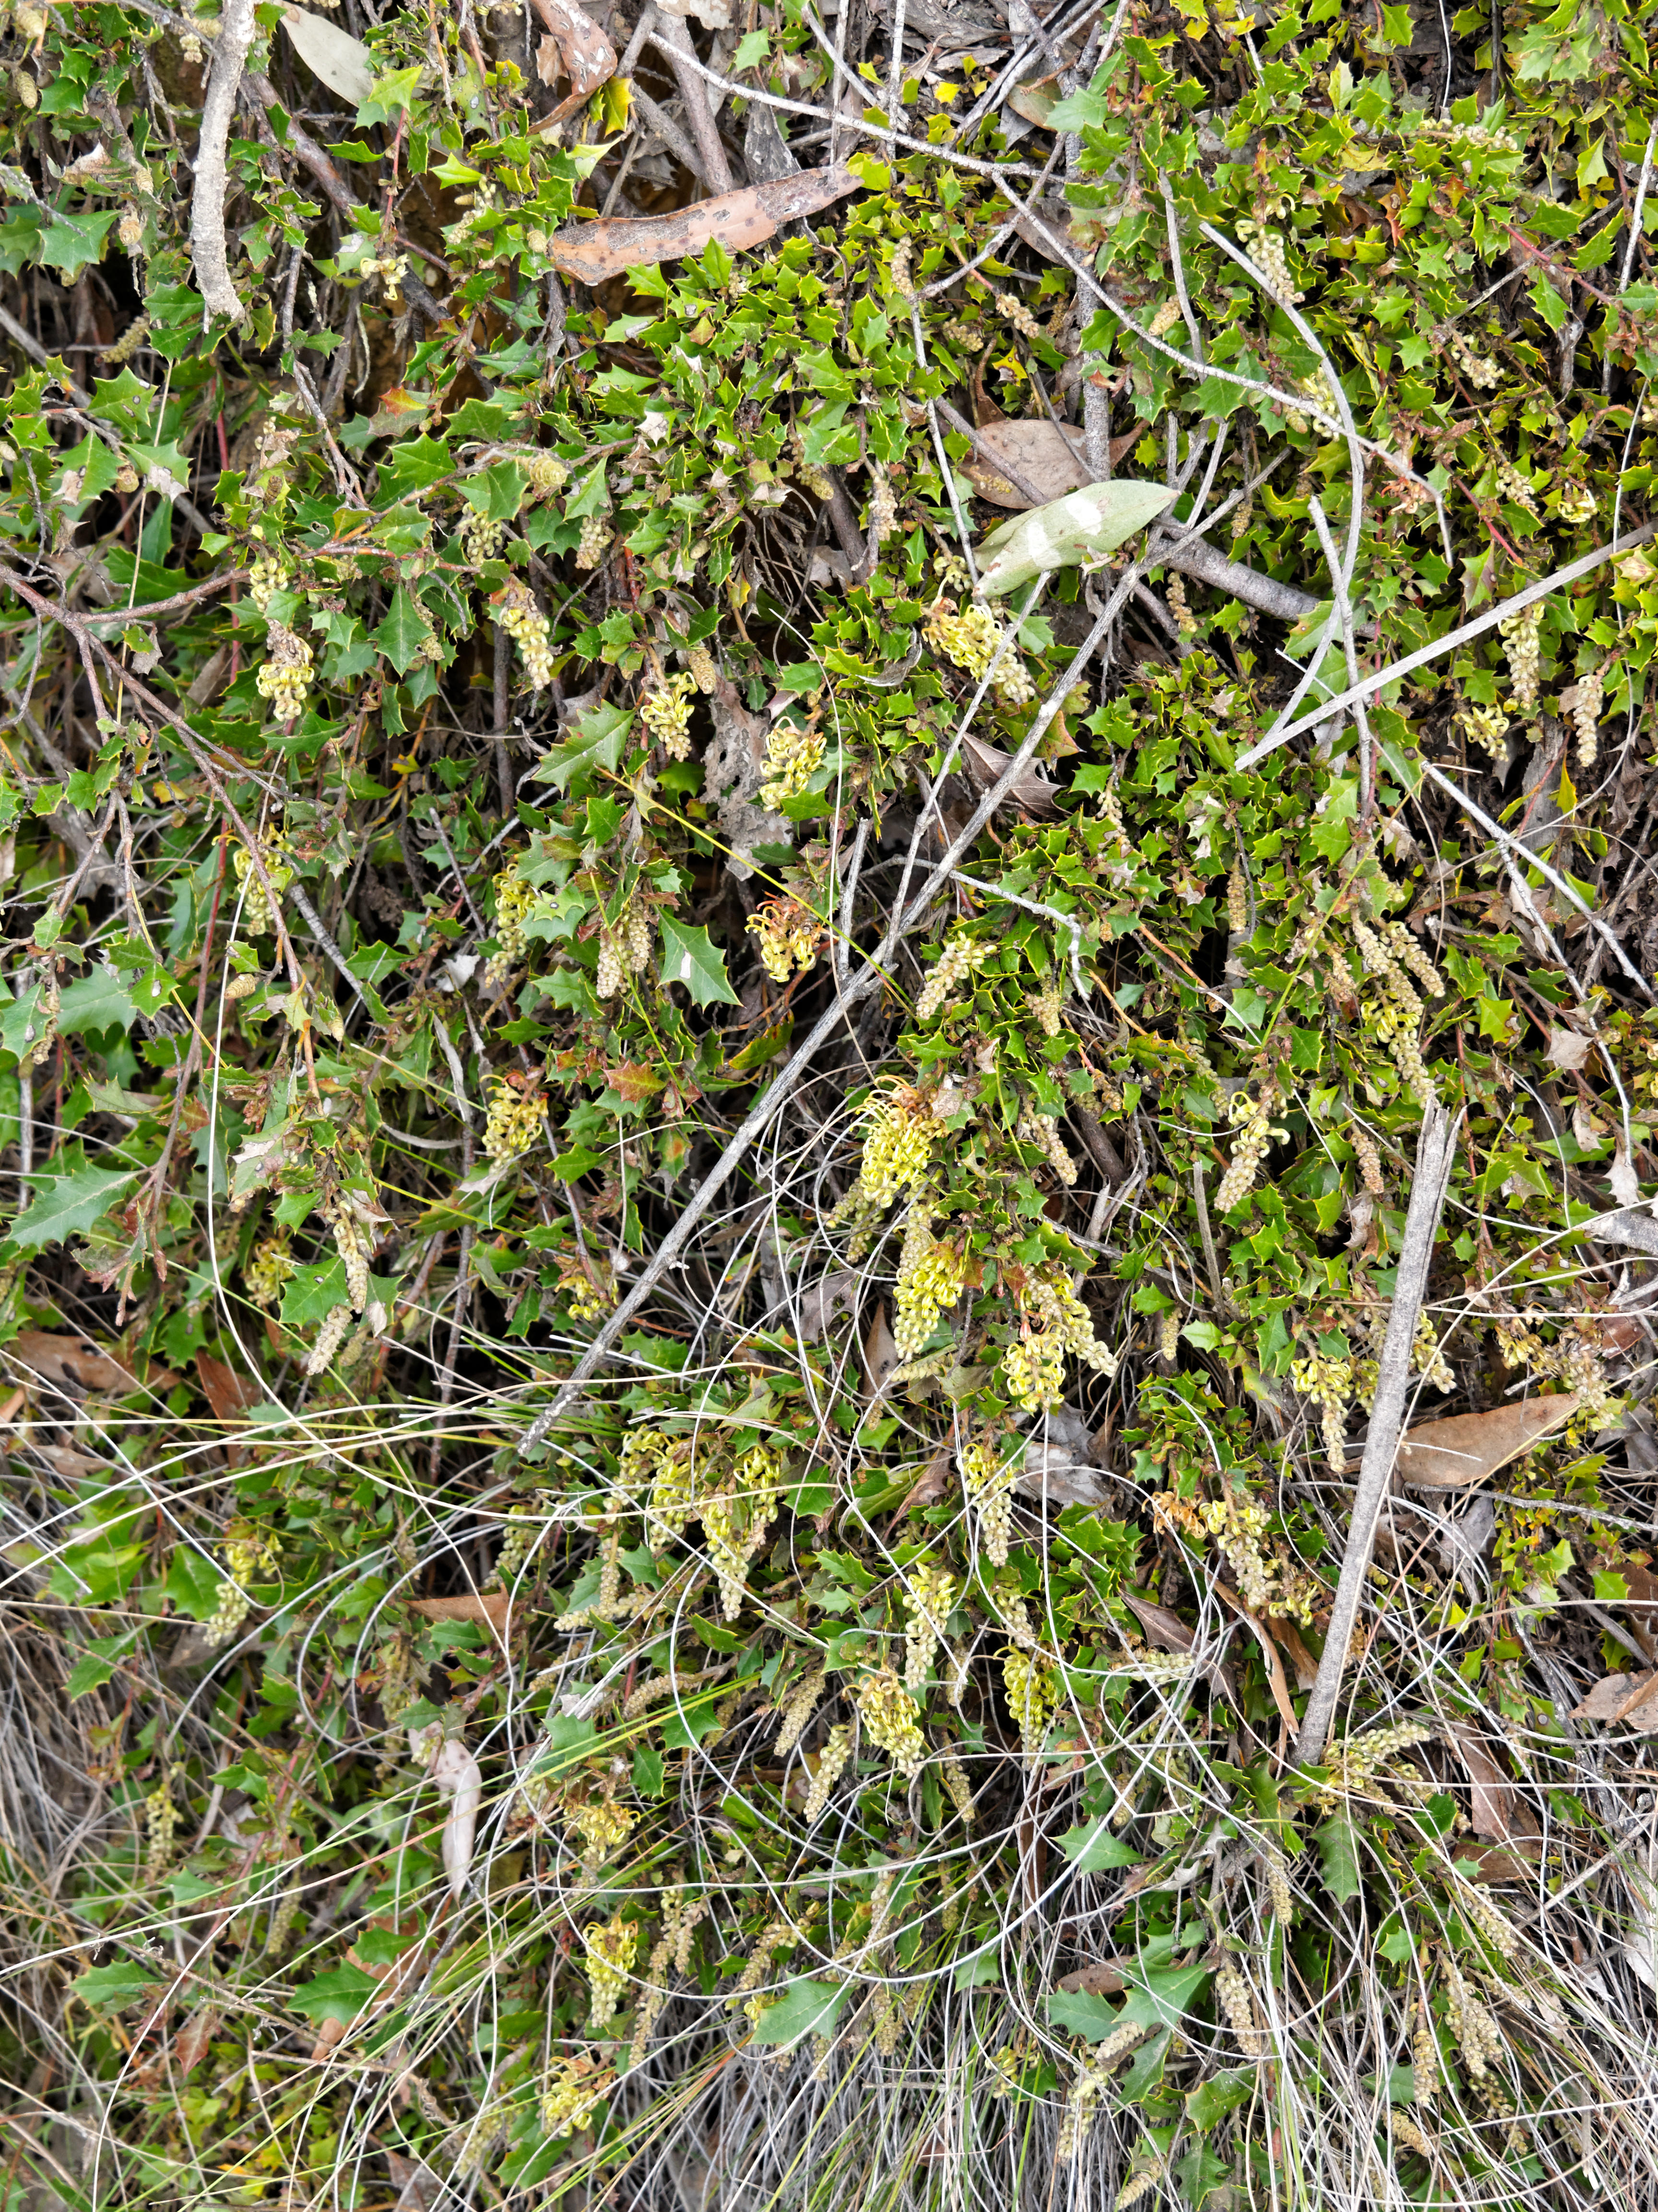 This should be Grevillea-bedggoodiana-11.jpeg.  Is it missing?